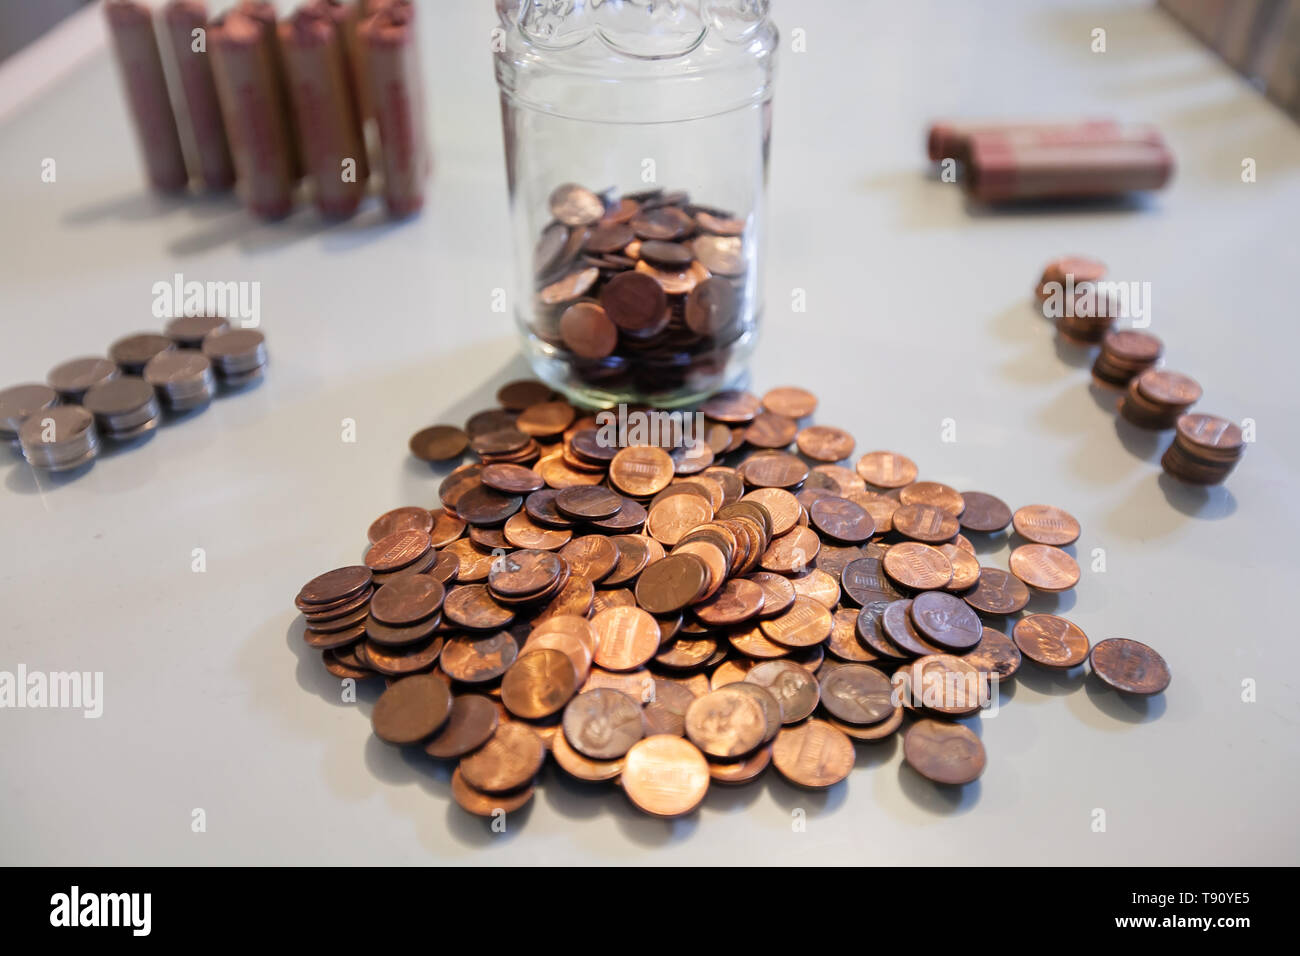 Counting pennies and coin money from spare change savings. - Stock Image